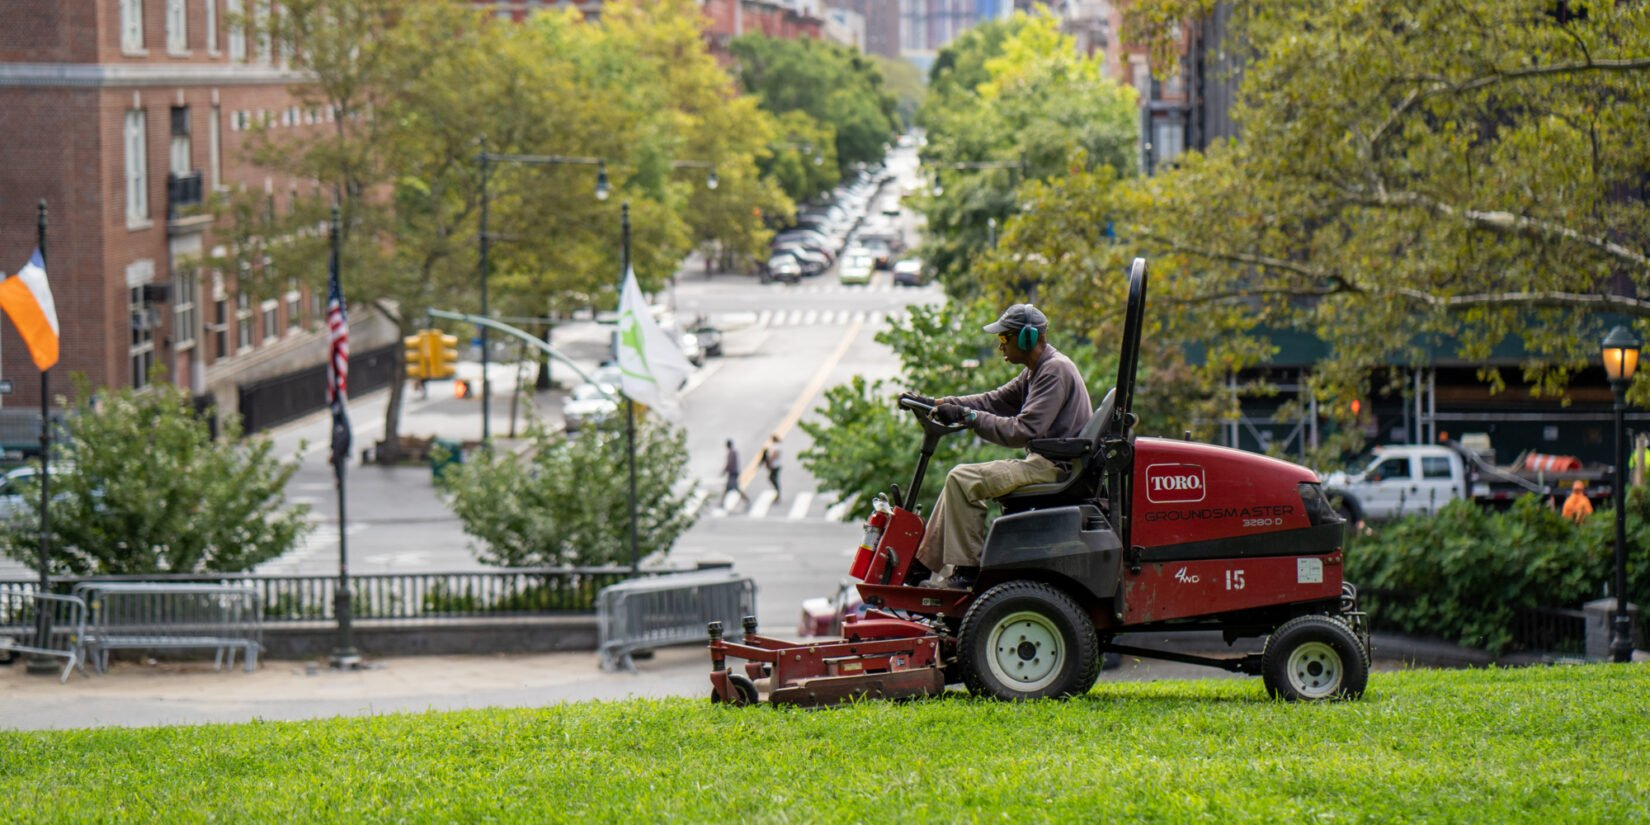 Conservancy groundskeeper on a riding mower